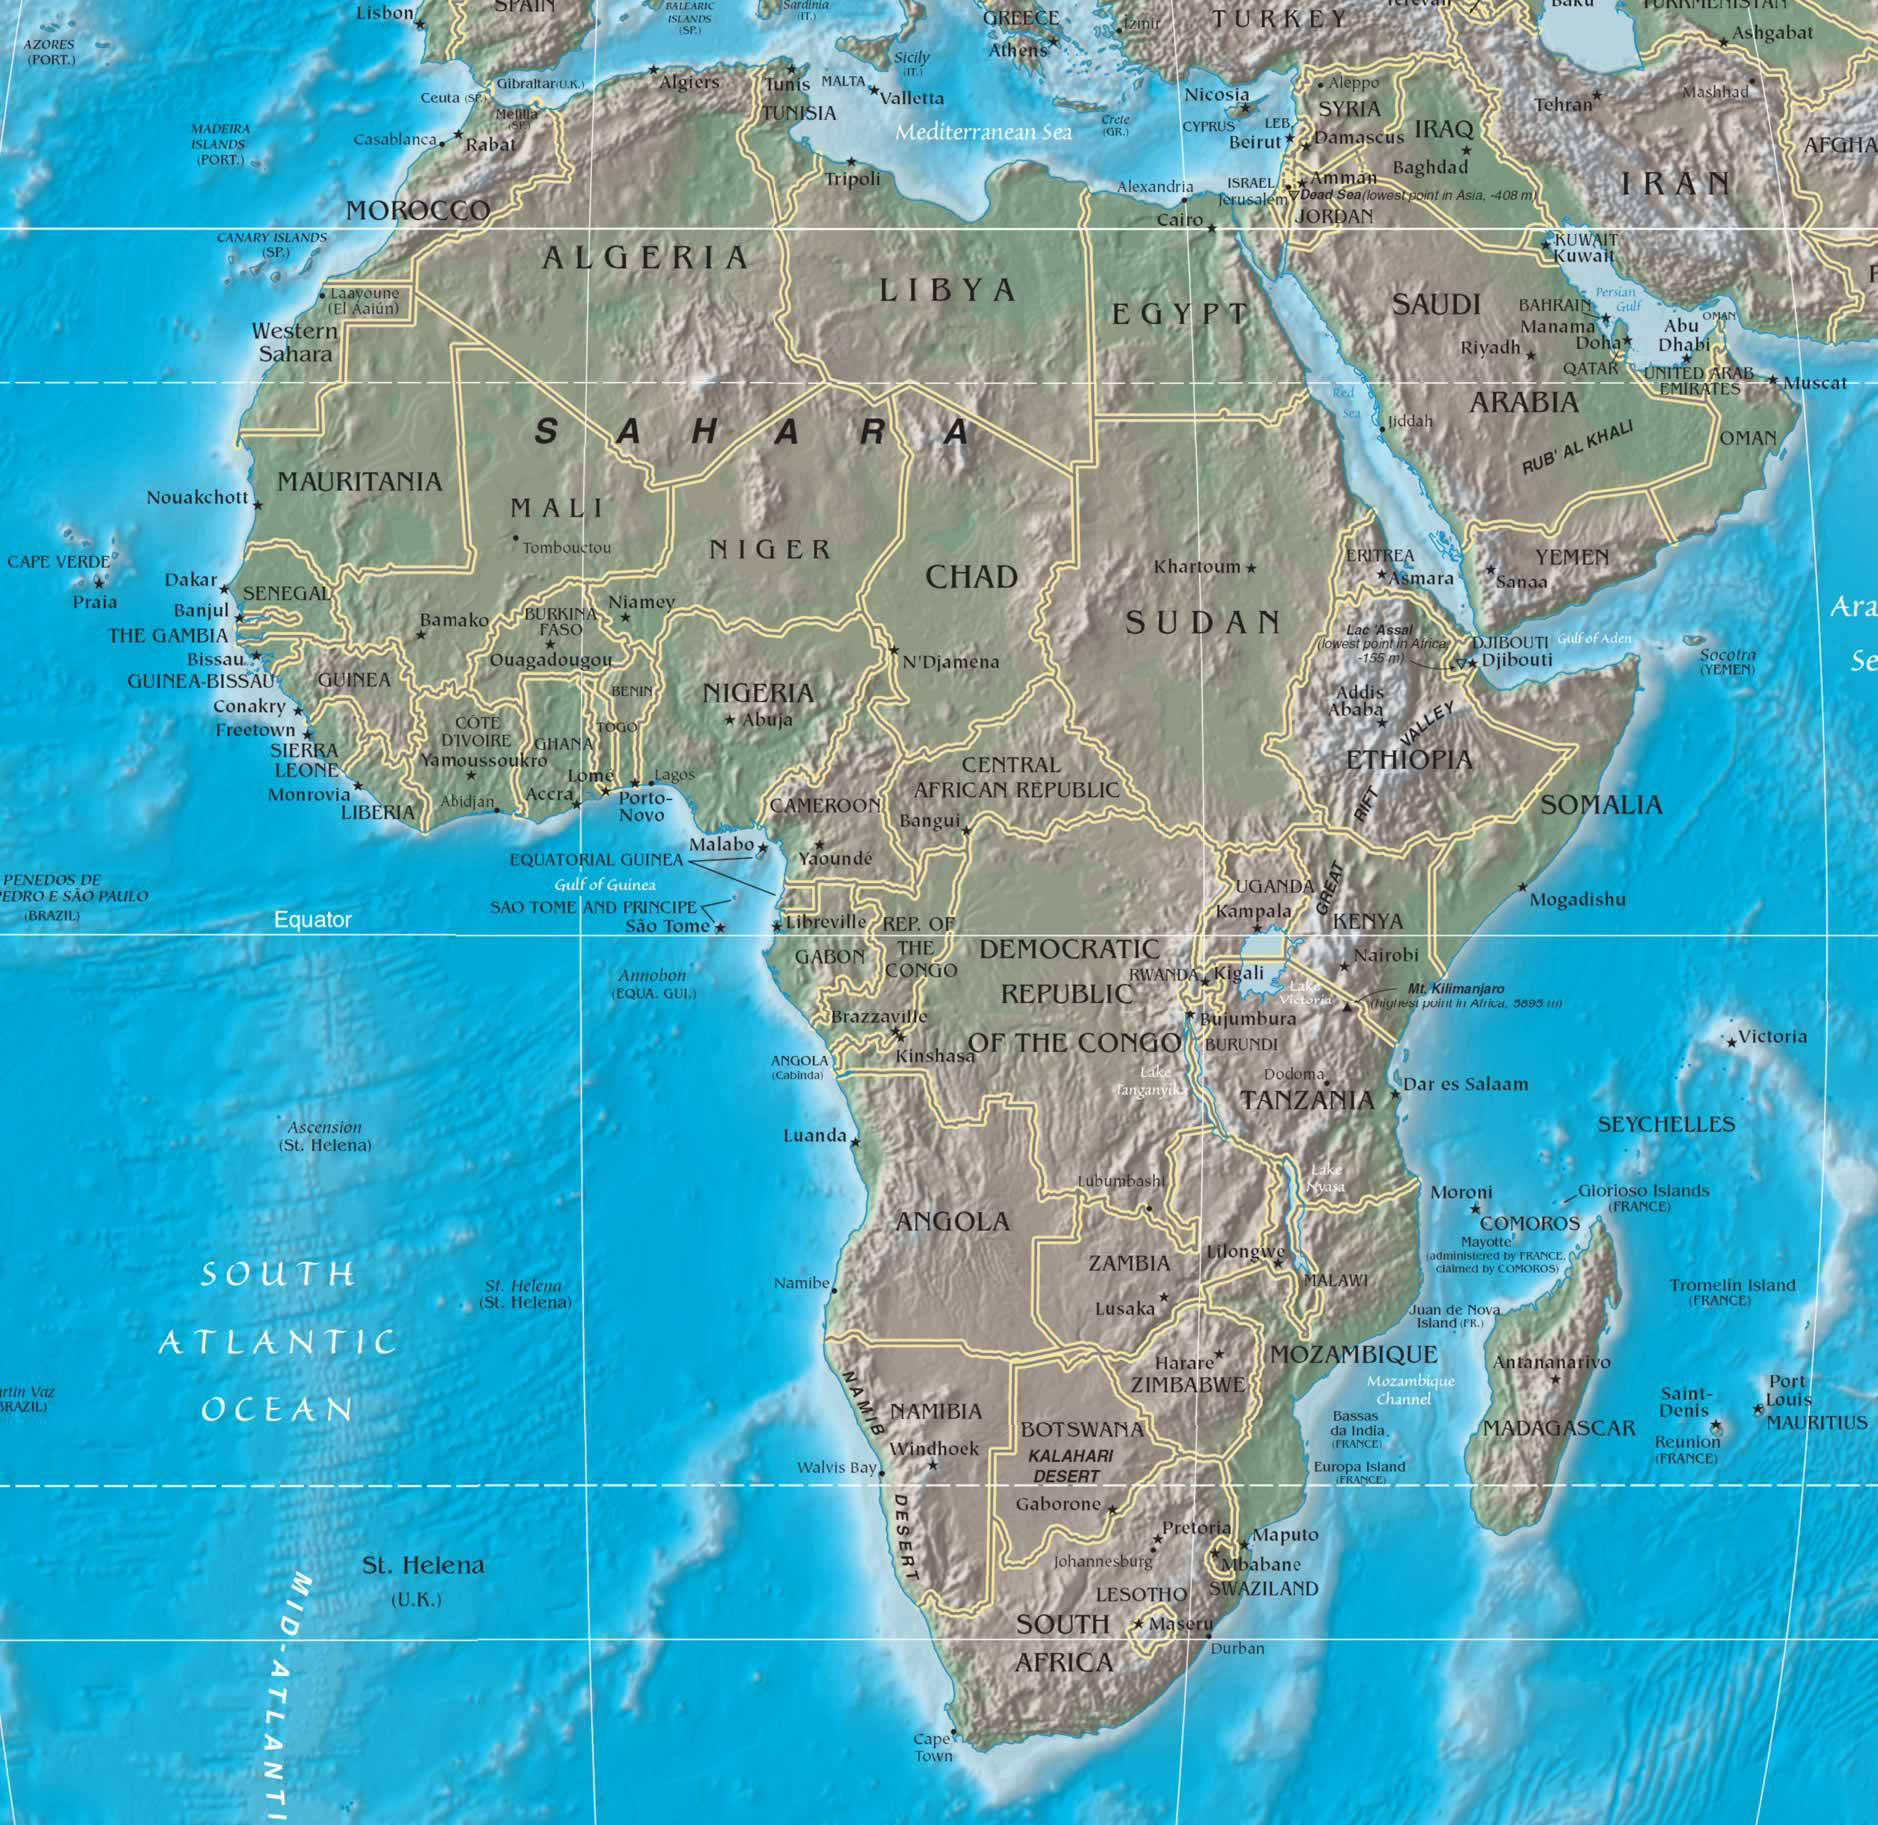 africa map political and physical Large Detailed Political And Physical Map Of Africa Africa Large africa map political and physical